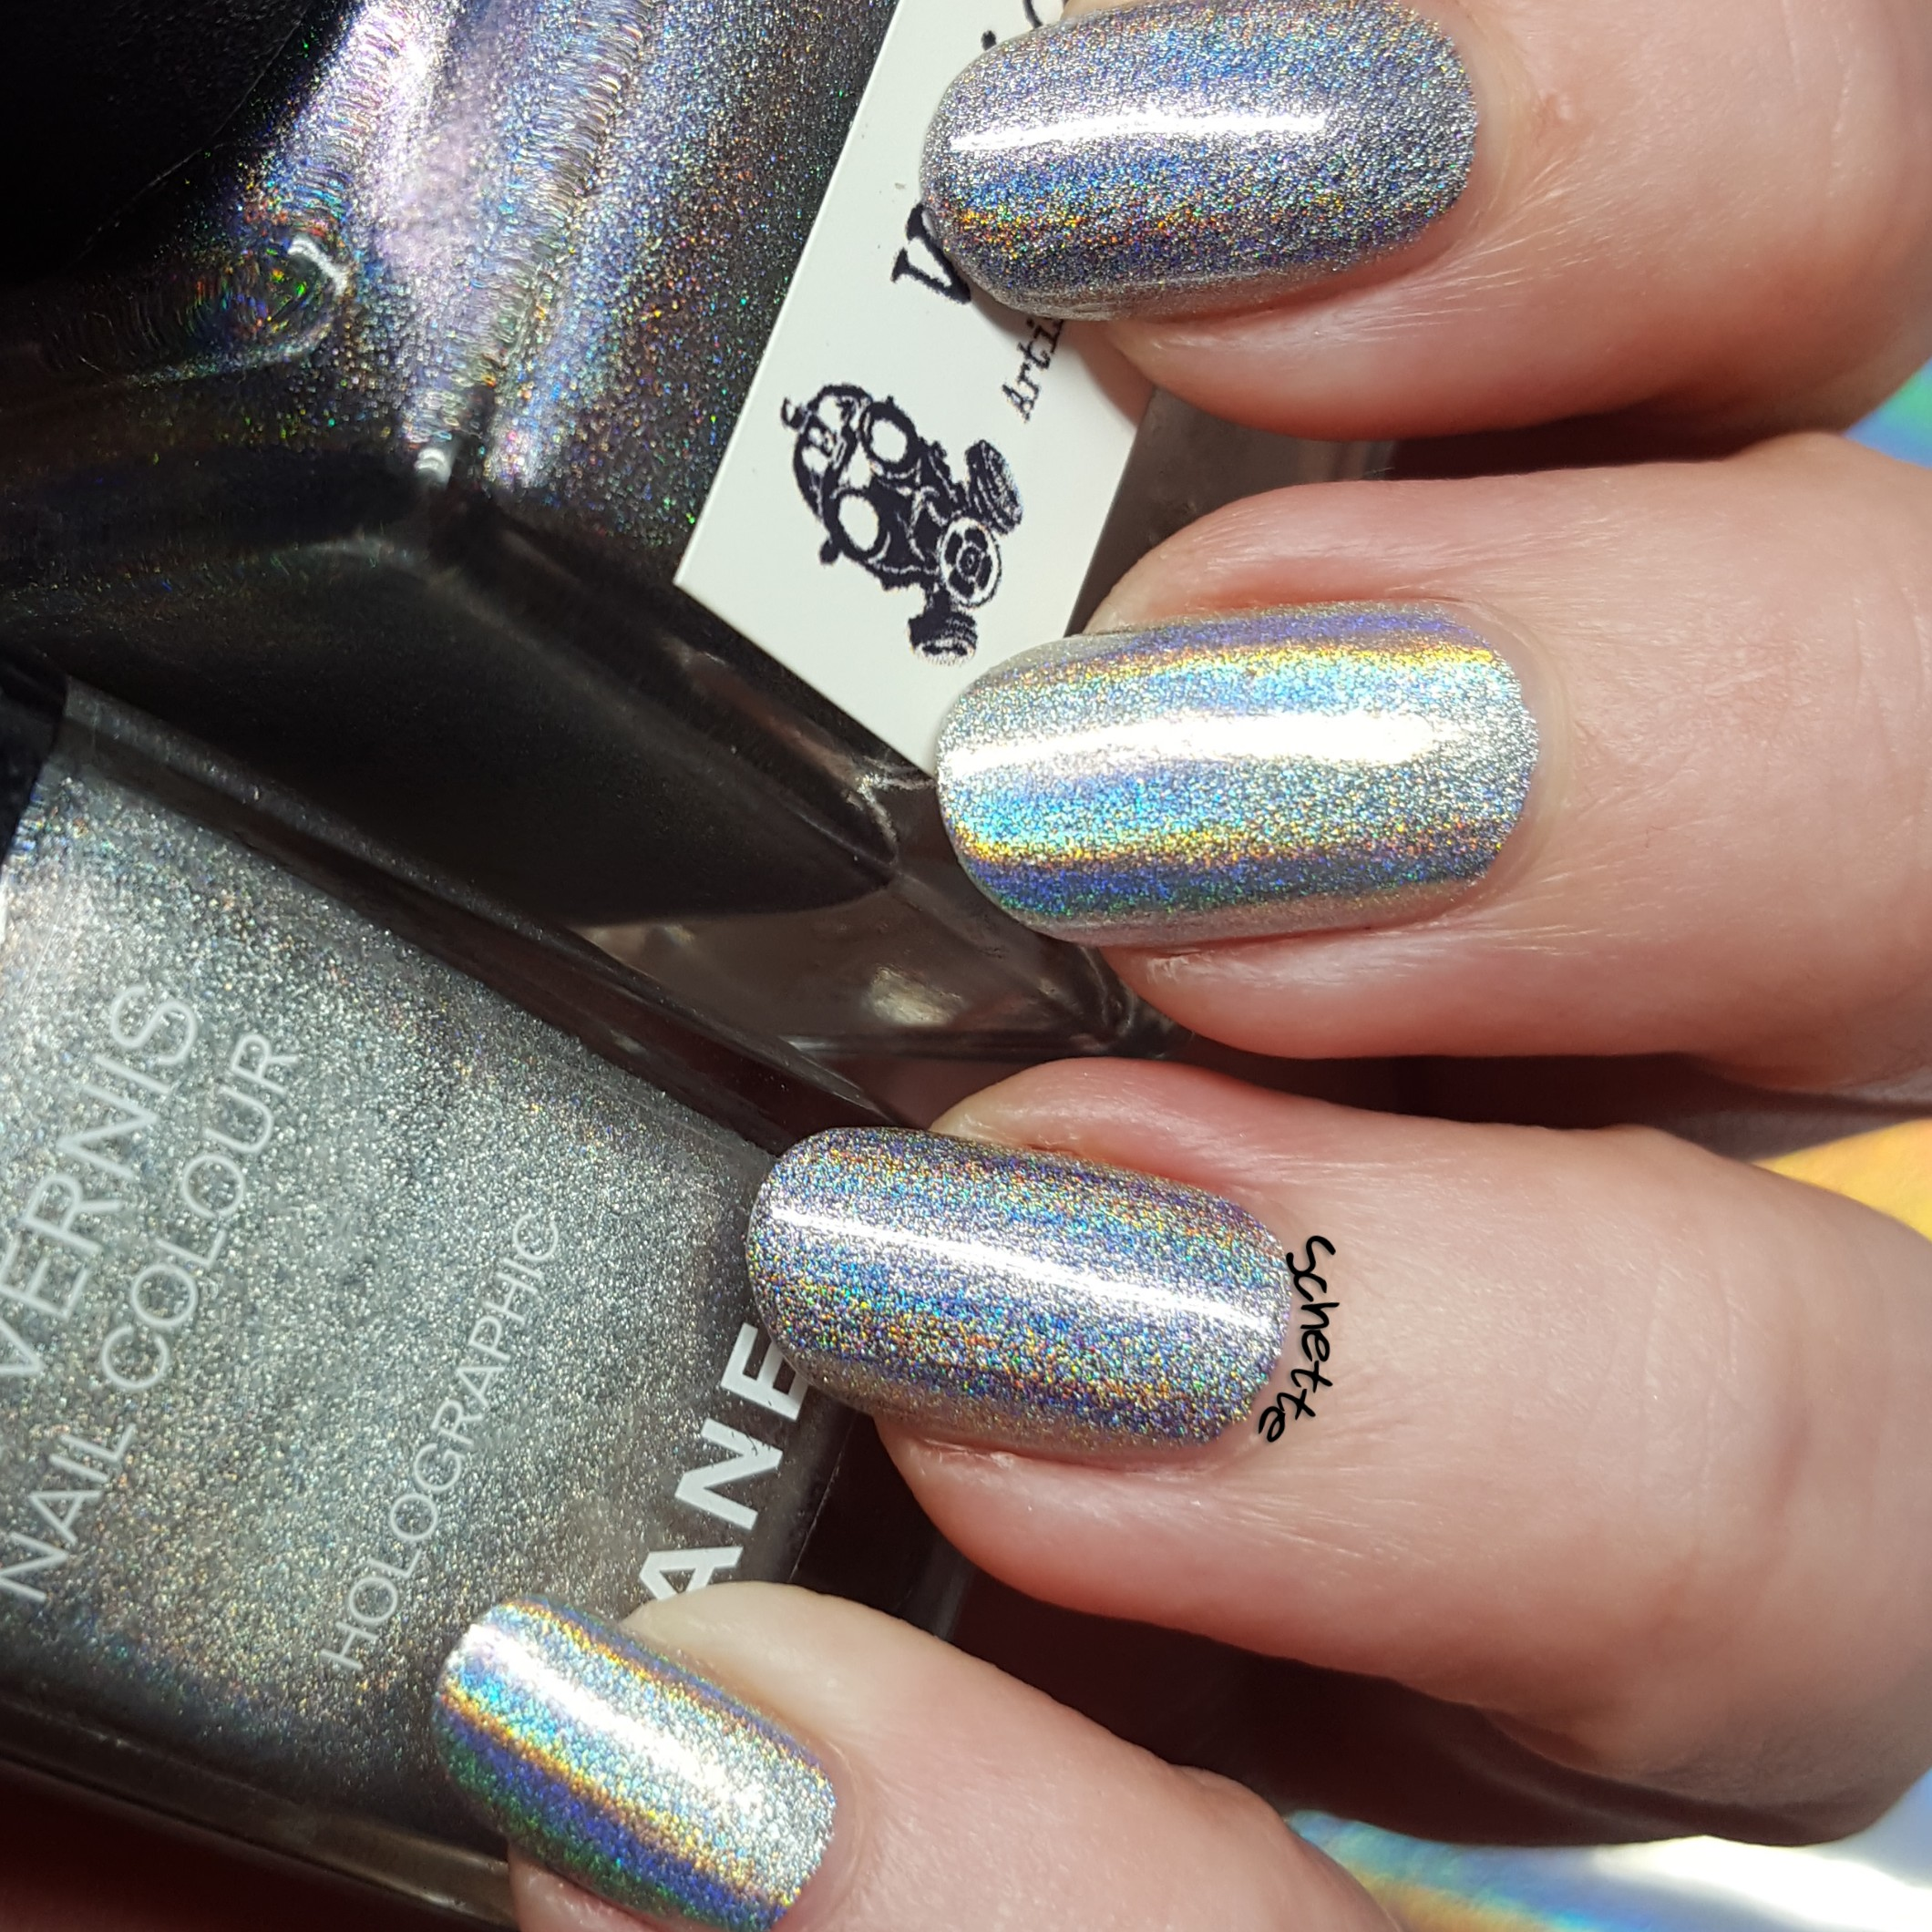 Chanel - Holographic